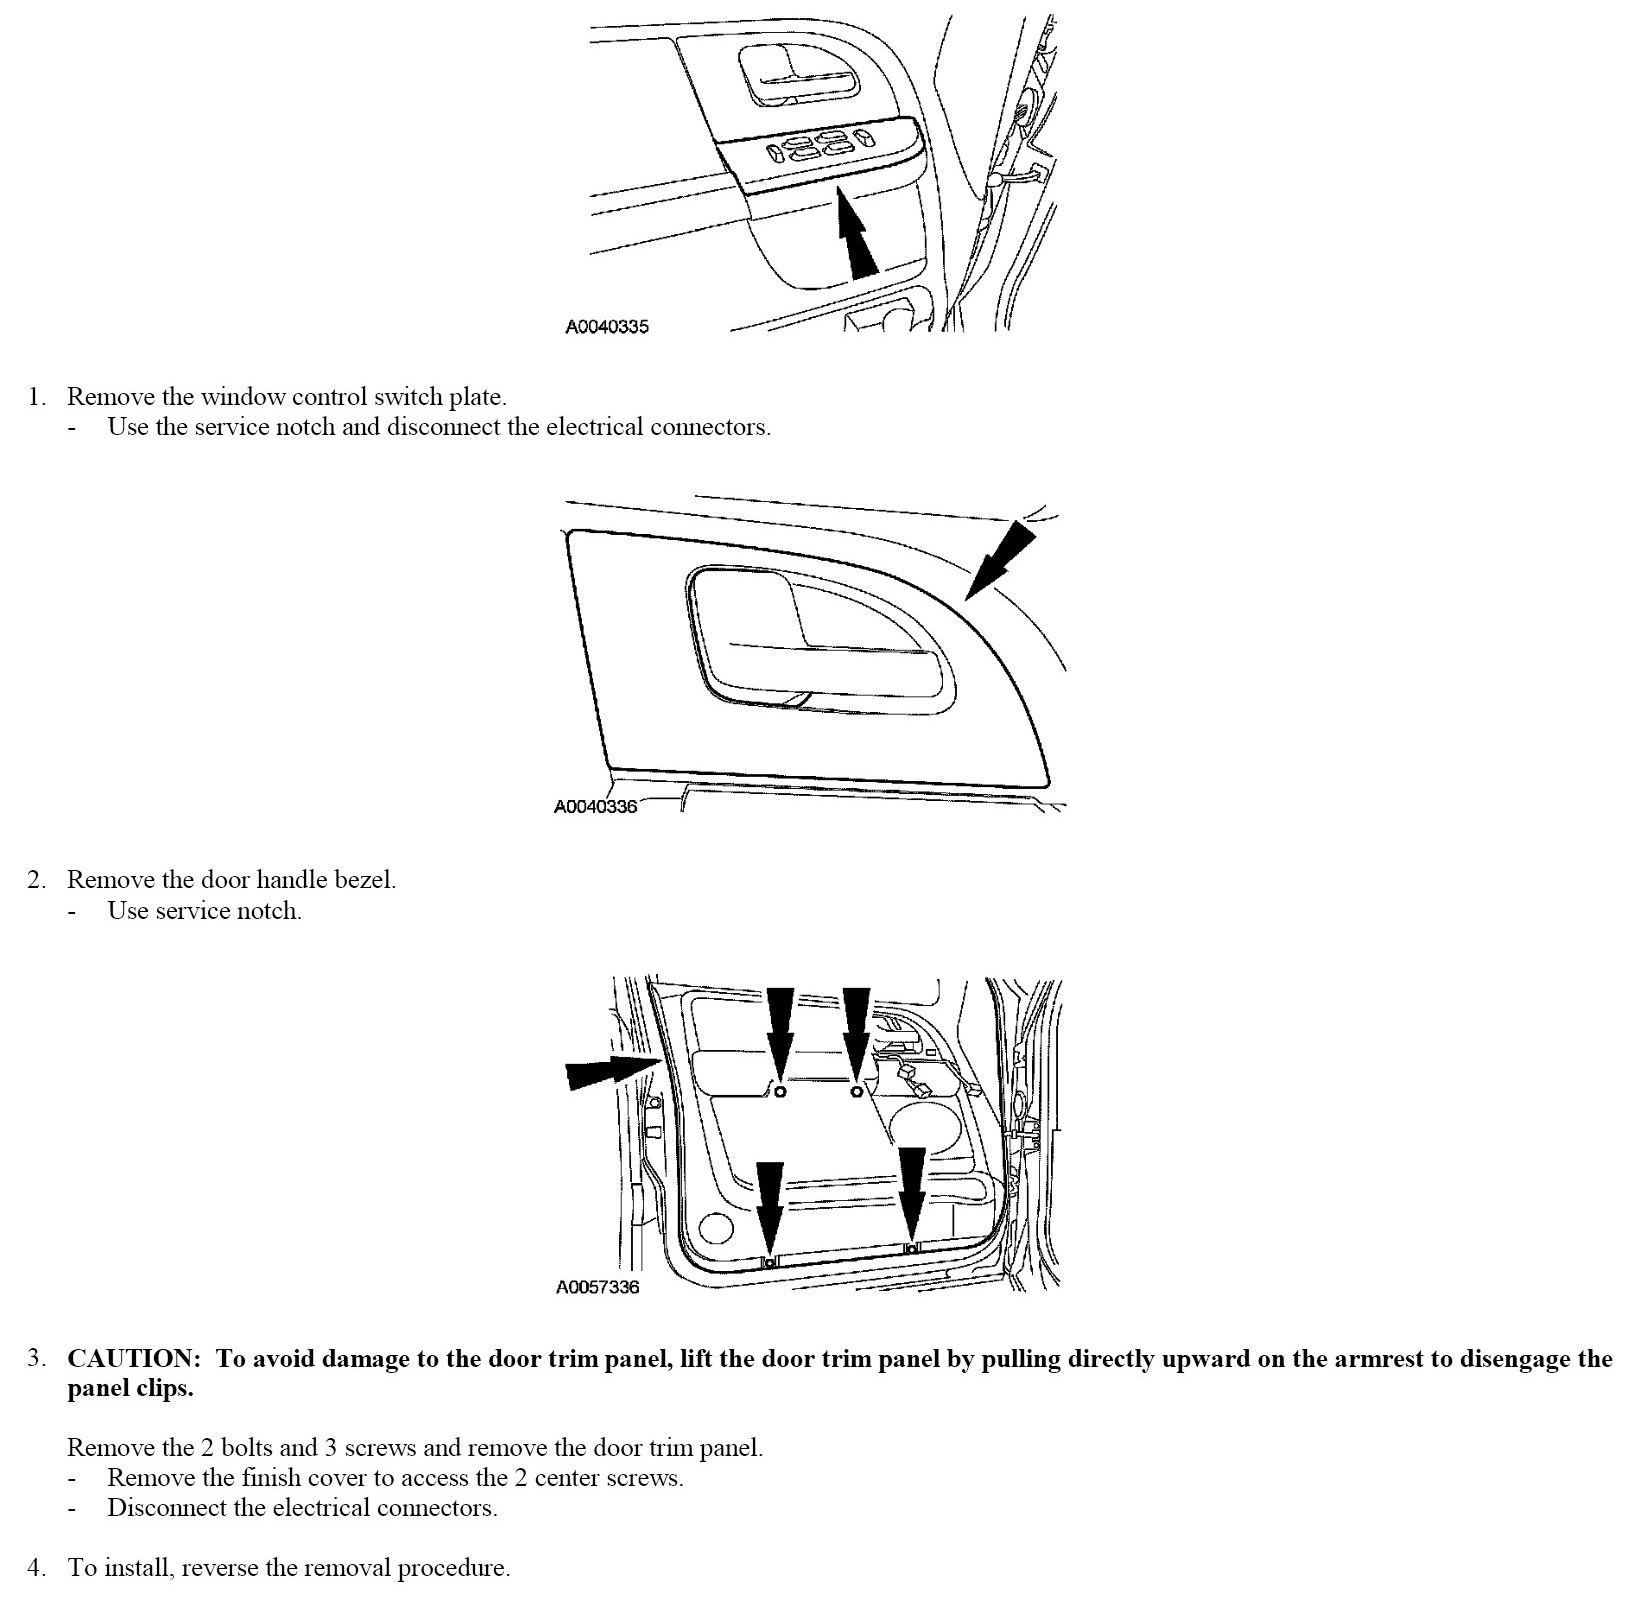 Sided Fa furthermore How Do I Remove A Door Panel In A 2004 Ford Expedition likewise Chevy Suburban Air Bag Wiring Diagram moreover Where Is My Intake Temperature Sensor On A 2007 54l Ford F 150 together with 915345 Does Anyone Have Wiring Diagram Break Away Setup Including Battery. on ford excursion rear view mirror